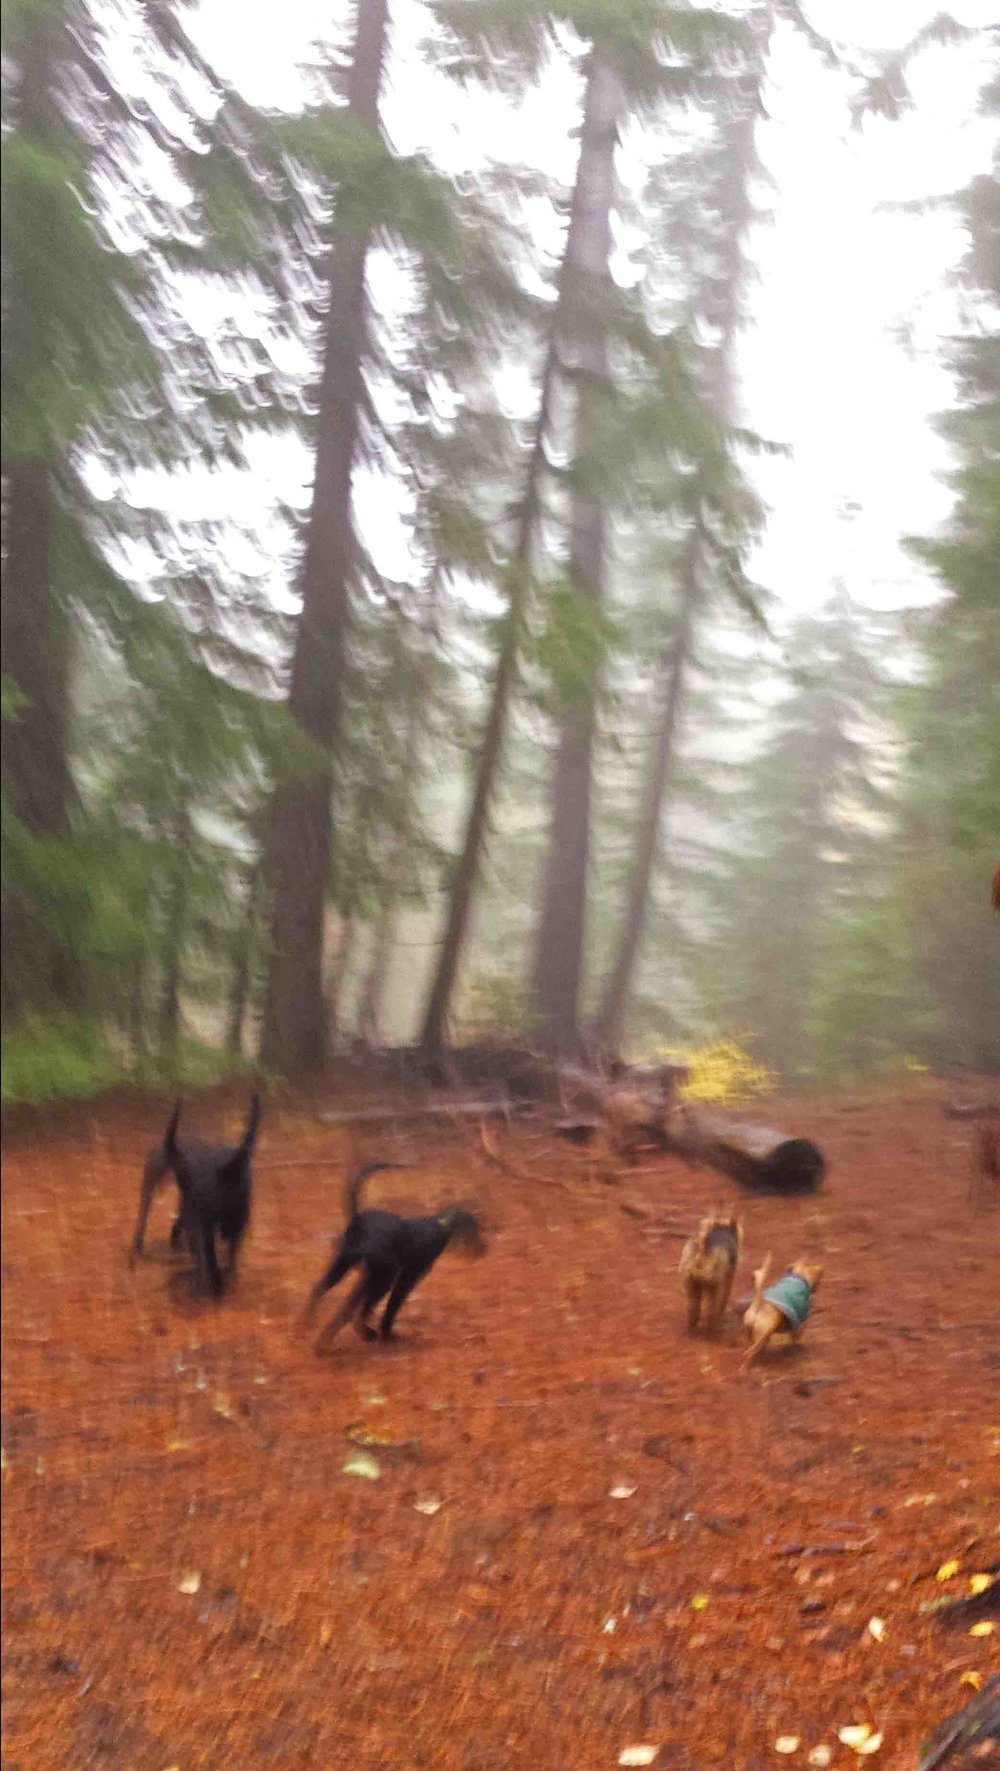 Outdoor dog fun in the Gifford Pinchot National Forest - near Trout Lake, WA   Photo: (c) Barb Ayers, DogDiary.org